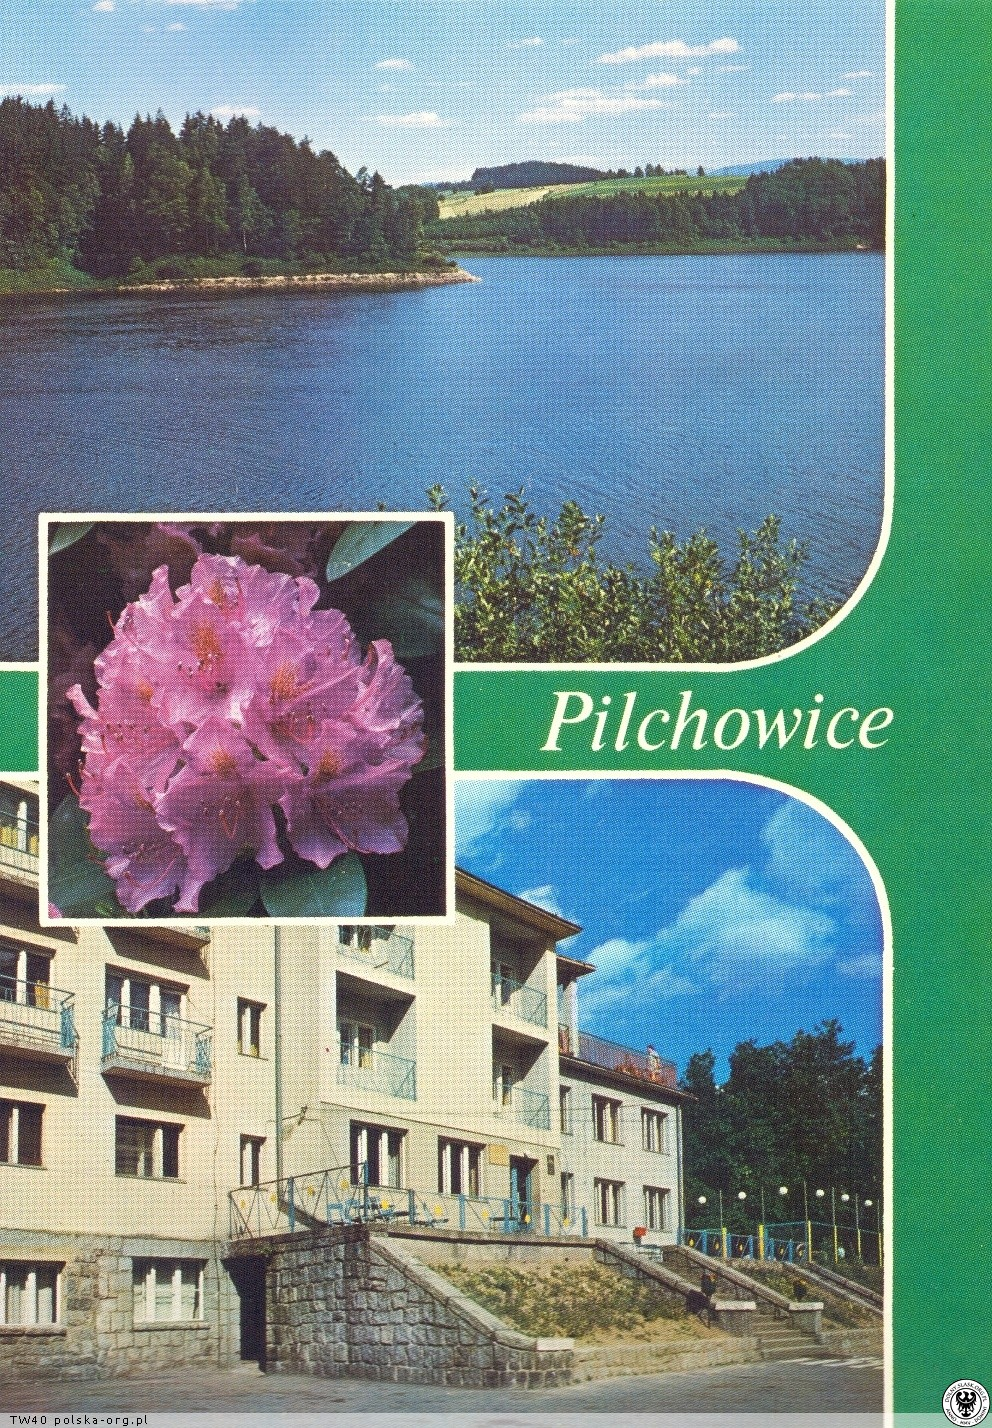 Pilchowice